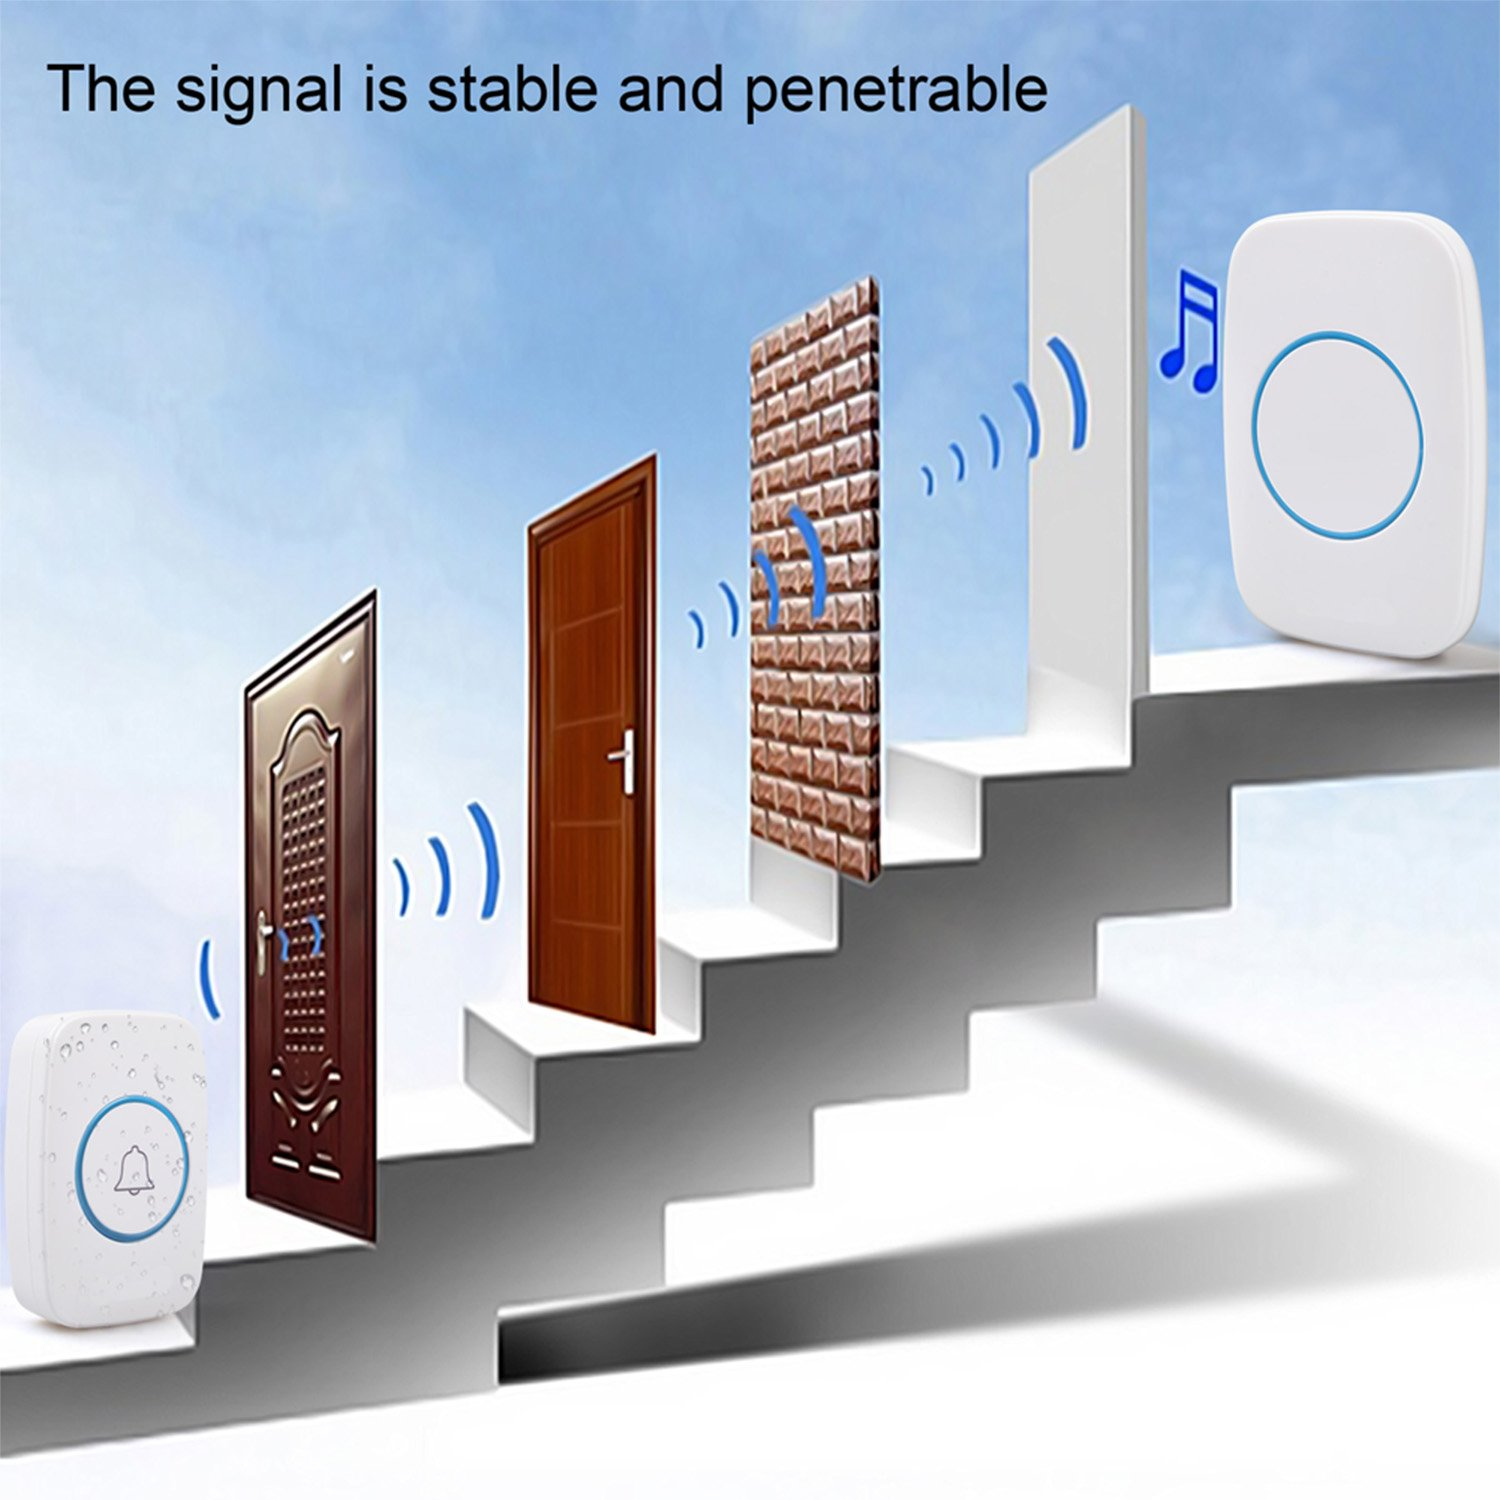 Adjustable Volume zhenxing Waterproof Door Bell Kit with 1 Plug-In Receiver and 1 Push Button Transmitter Operating at 500Feet Wireless Doorbell Battery included 48 Chimes zwzx